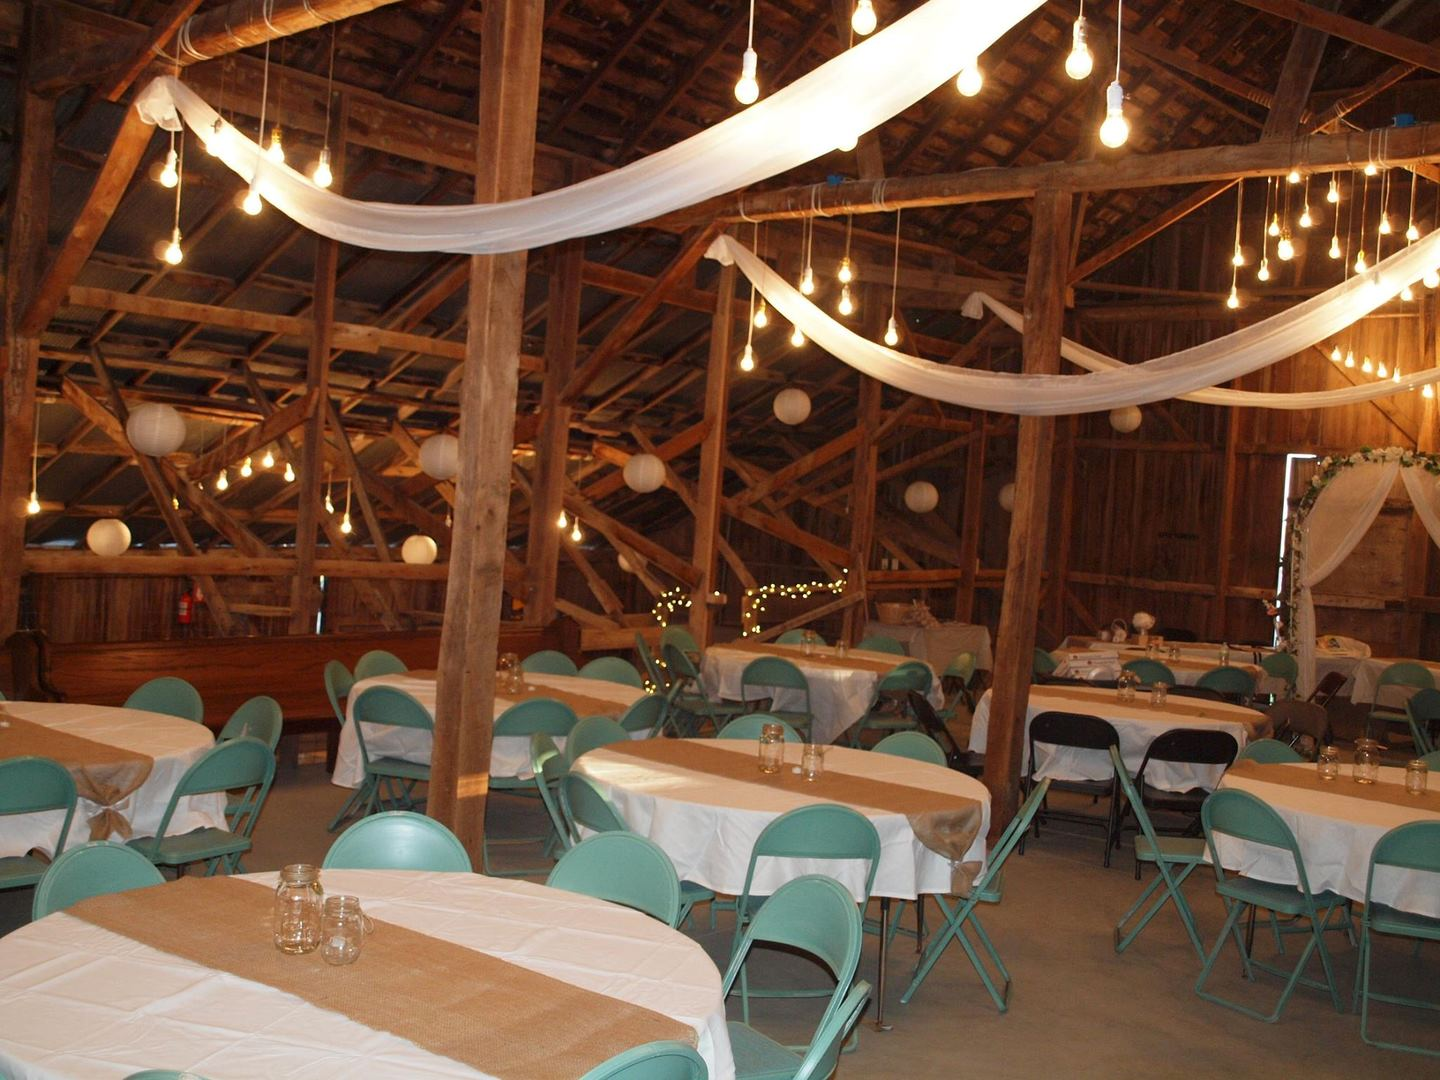 Just The Place Barn Weddings - 5